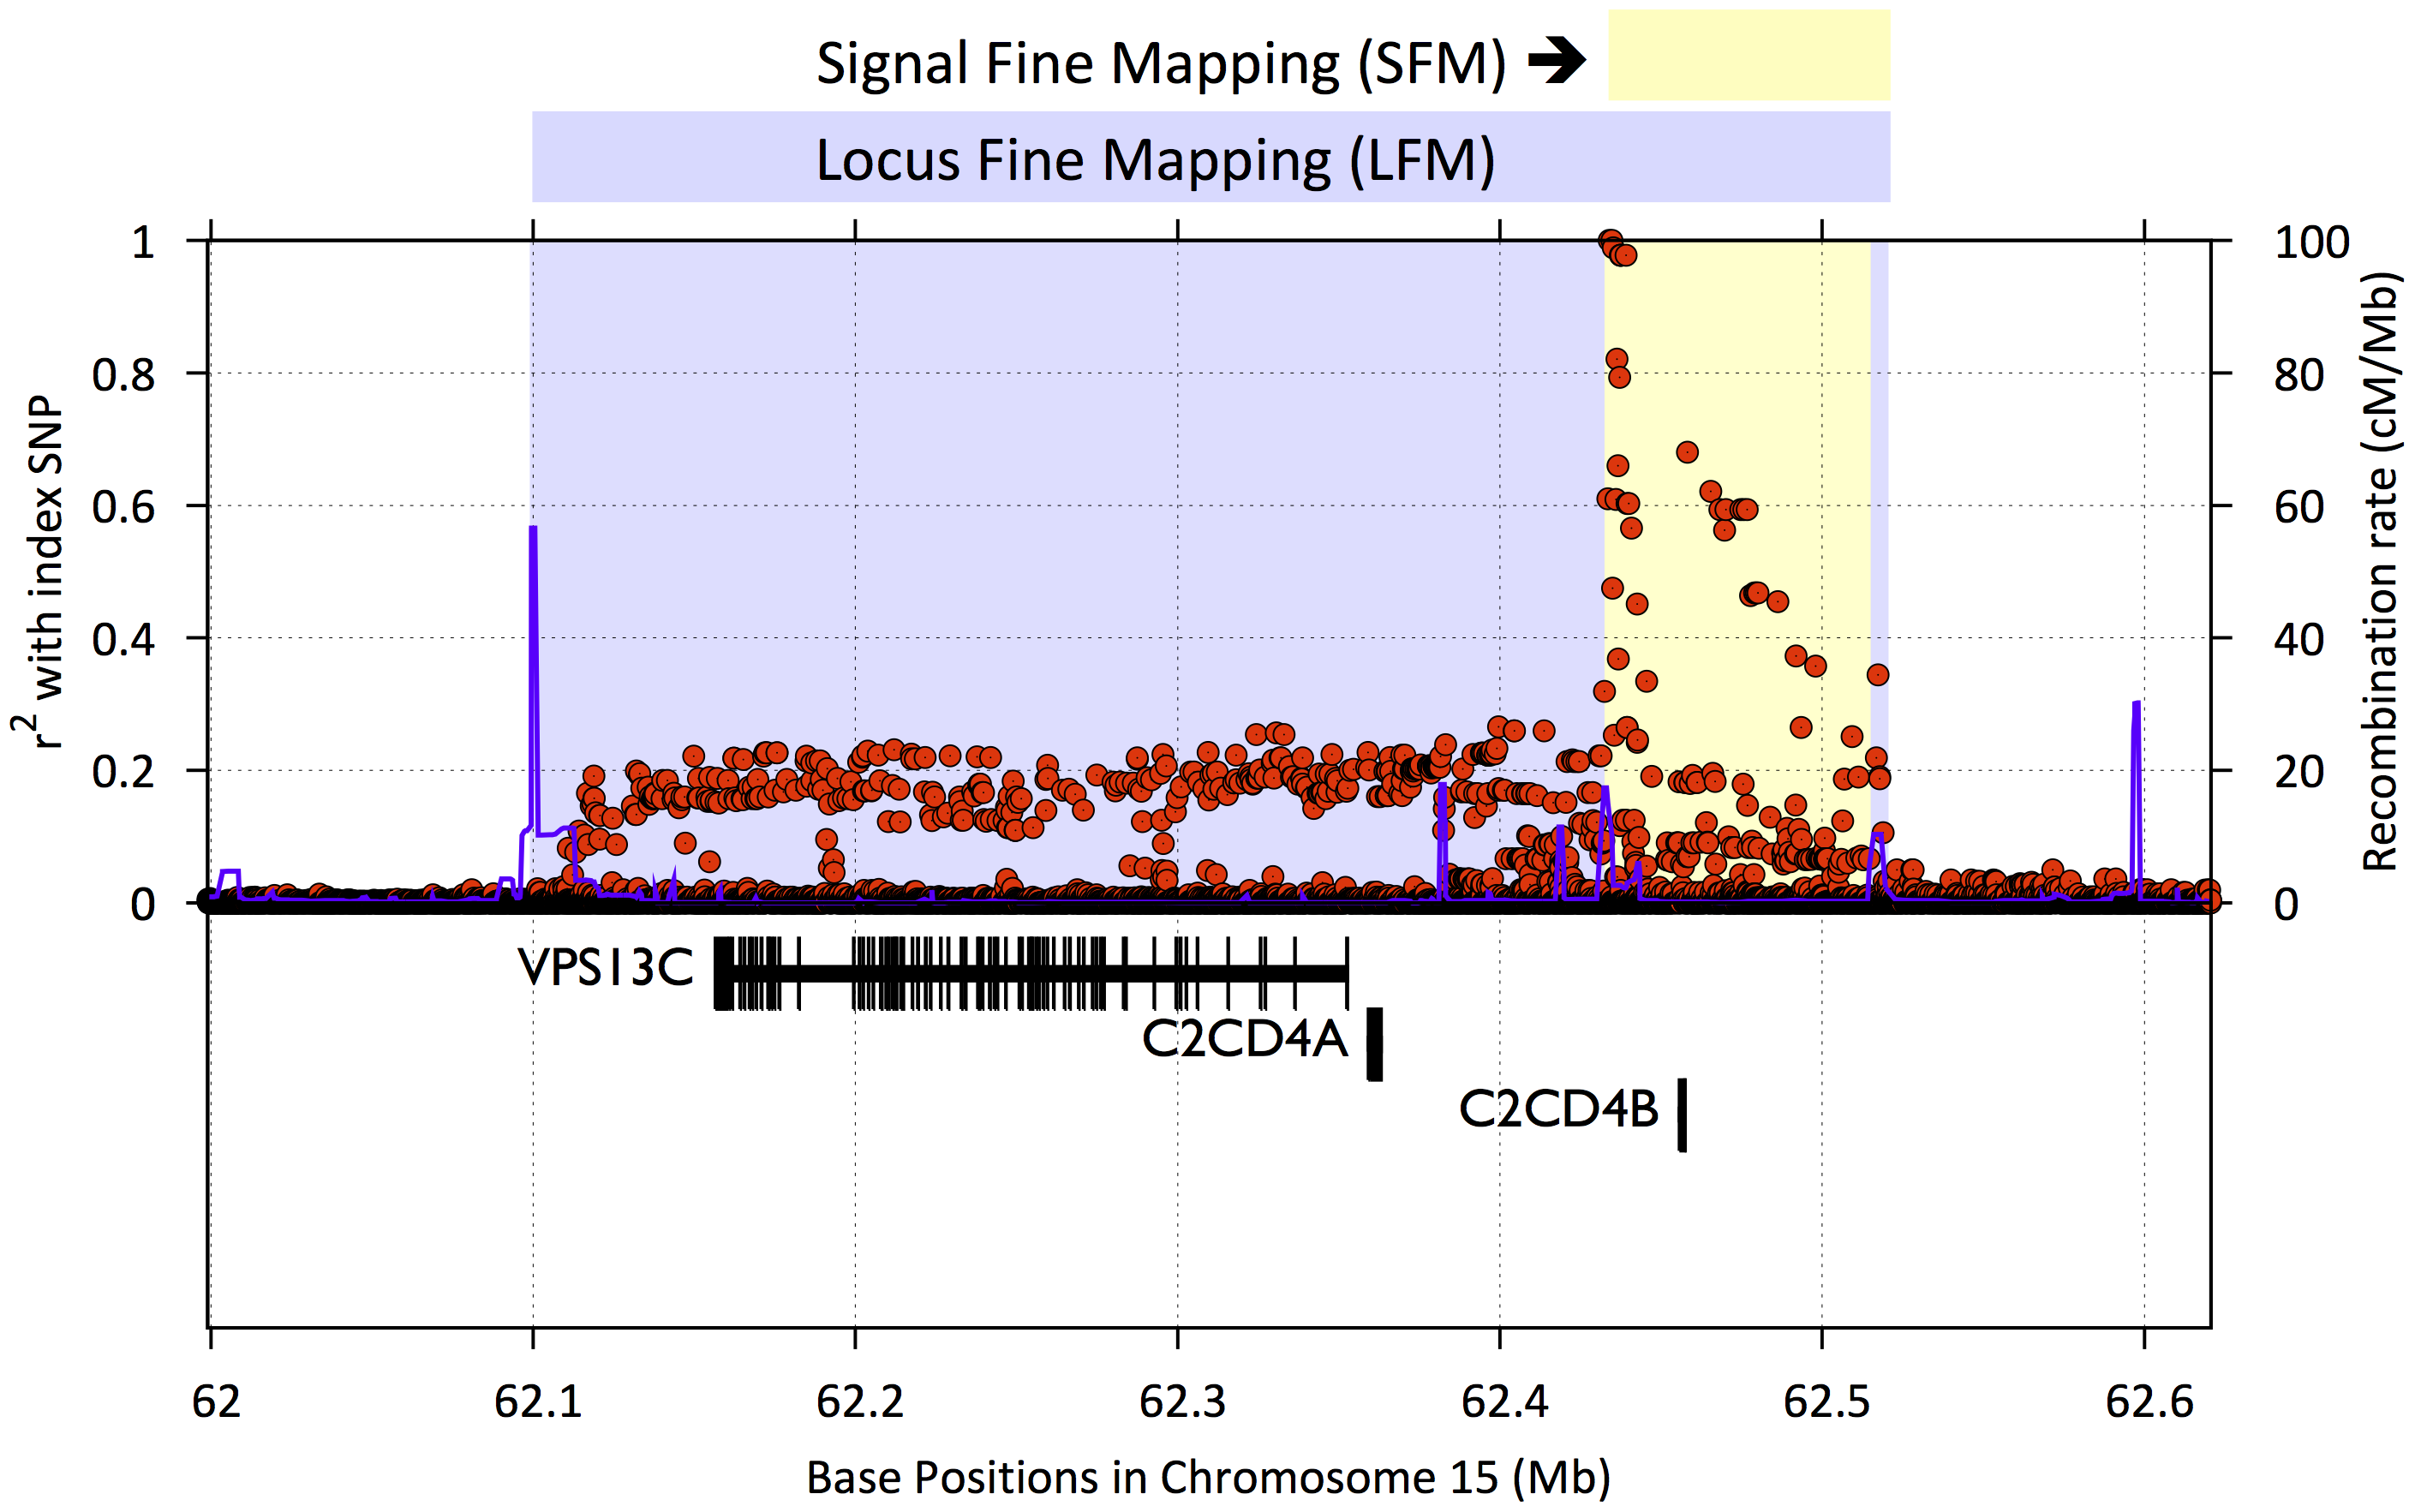 Example of signal fine mapping (SFM) and locus fine mapping (LFM) regions.